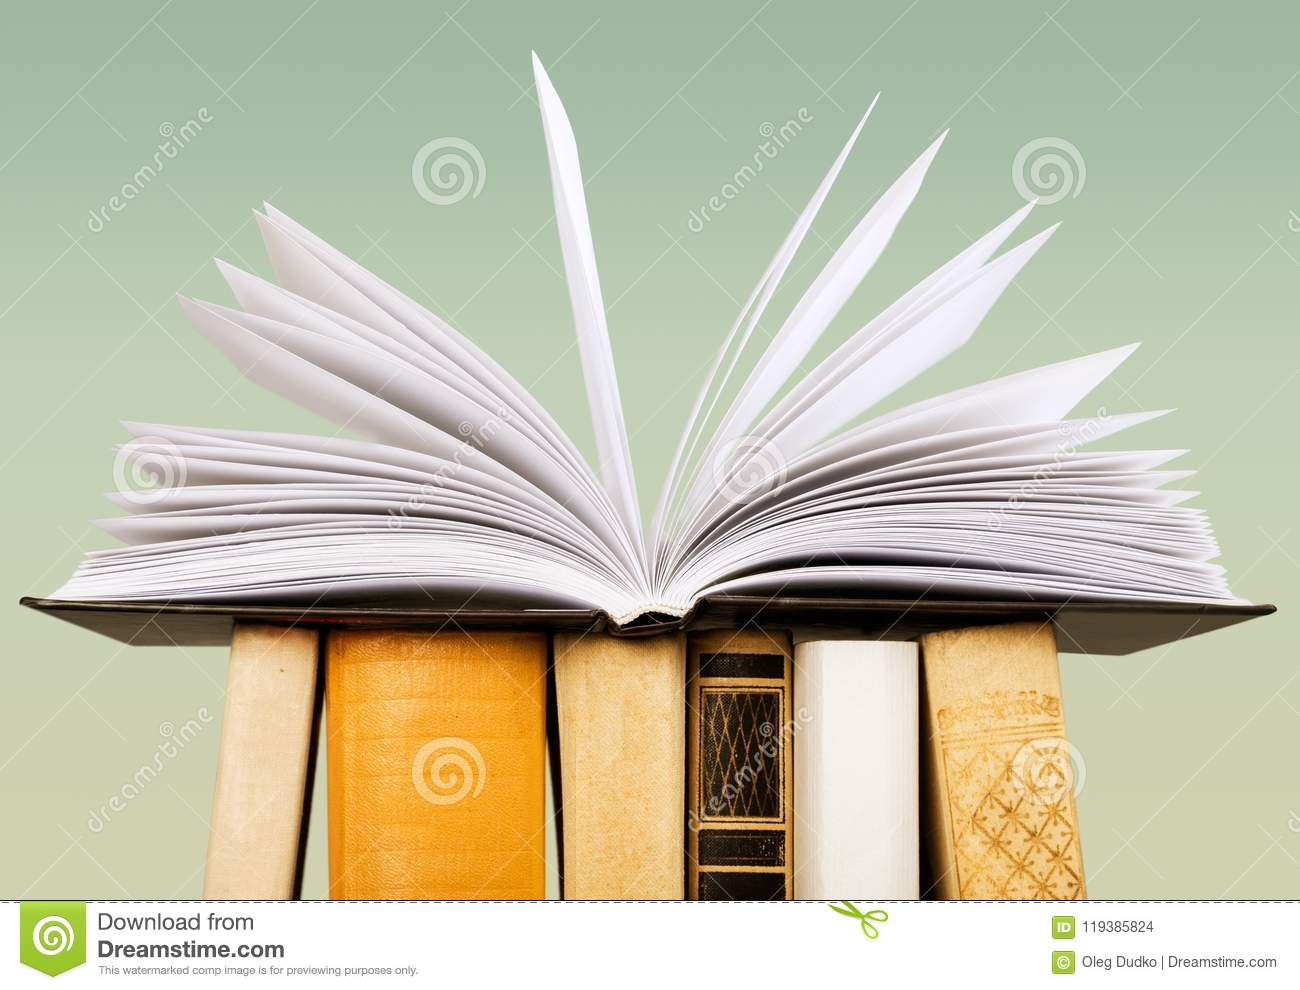 Book stock photo  Image of still, read, collage, arrangement